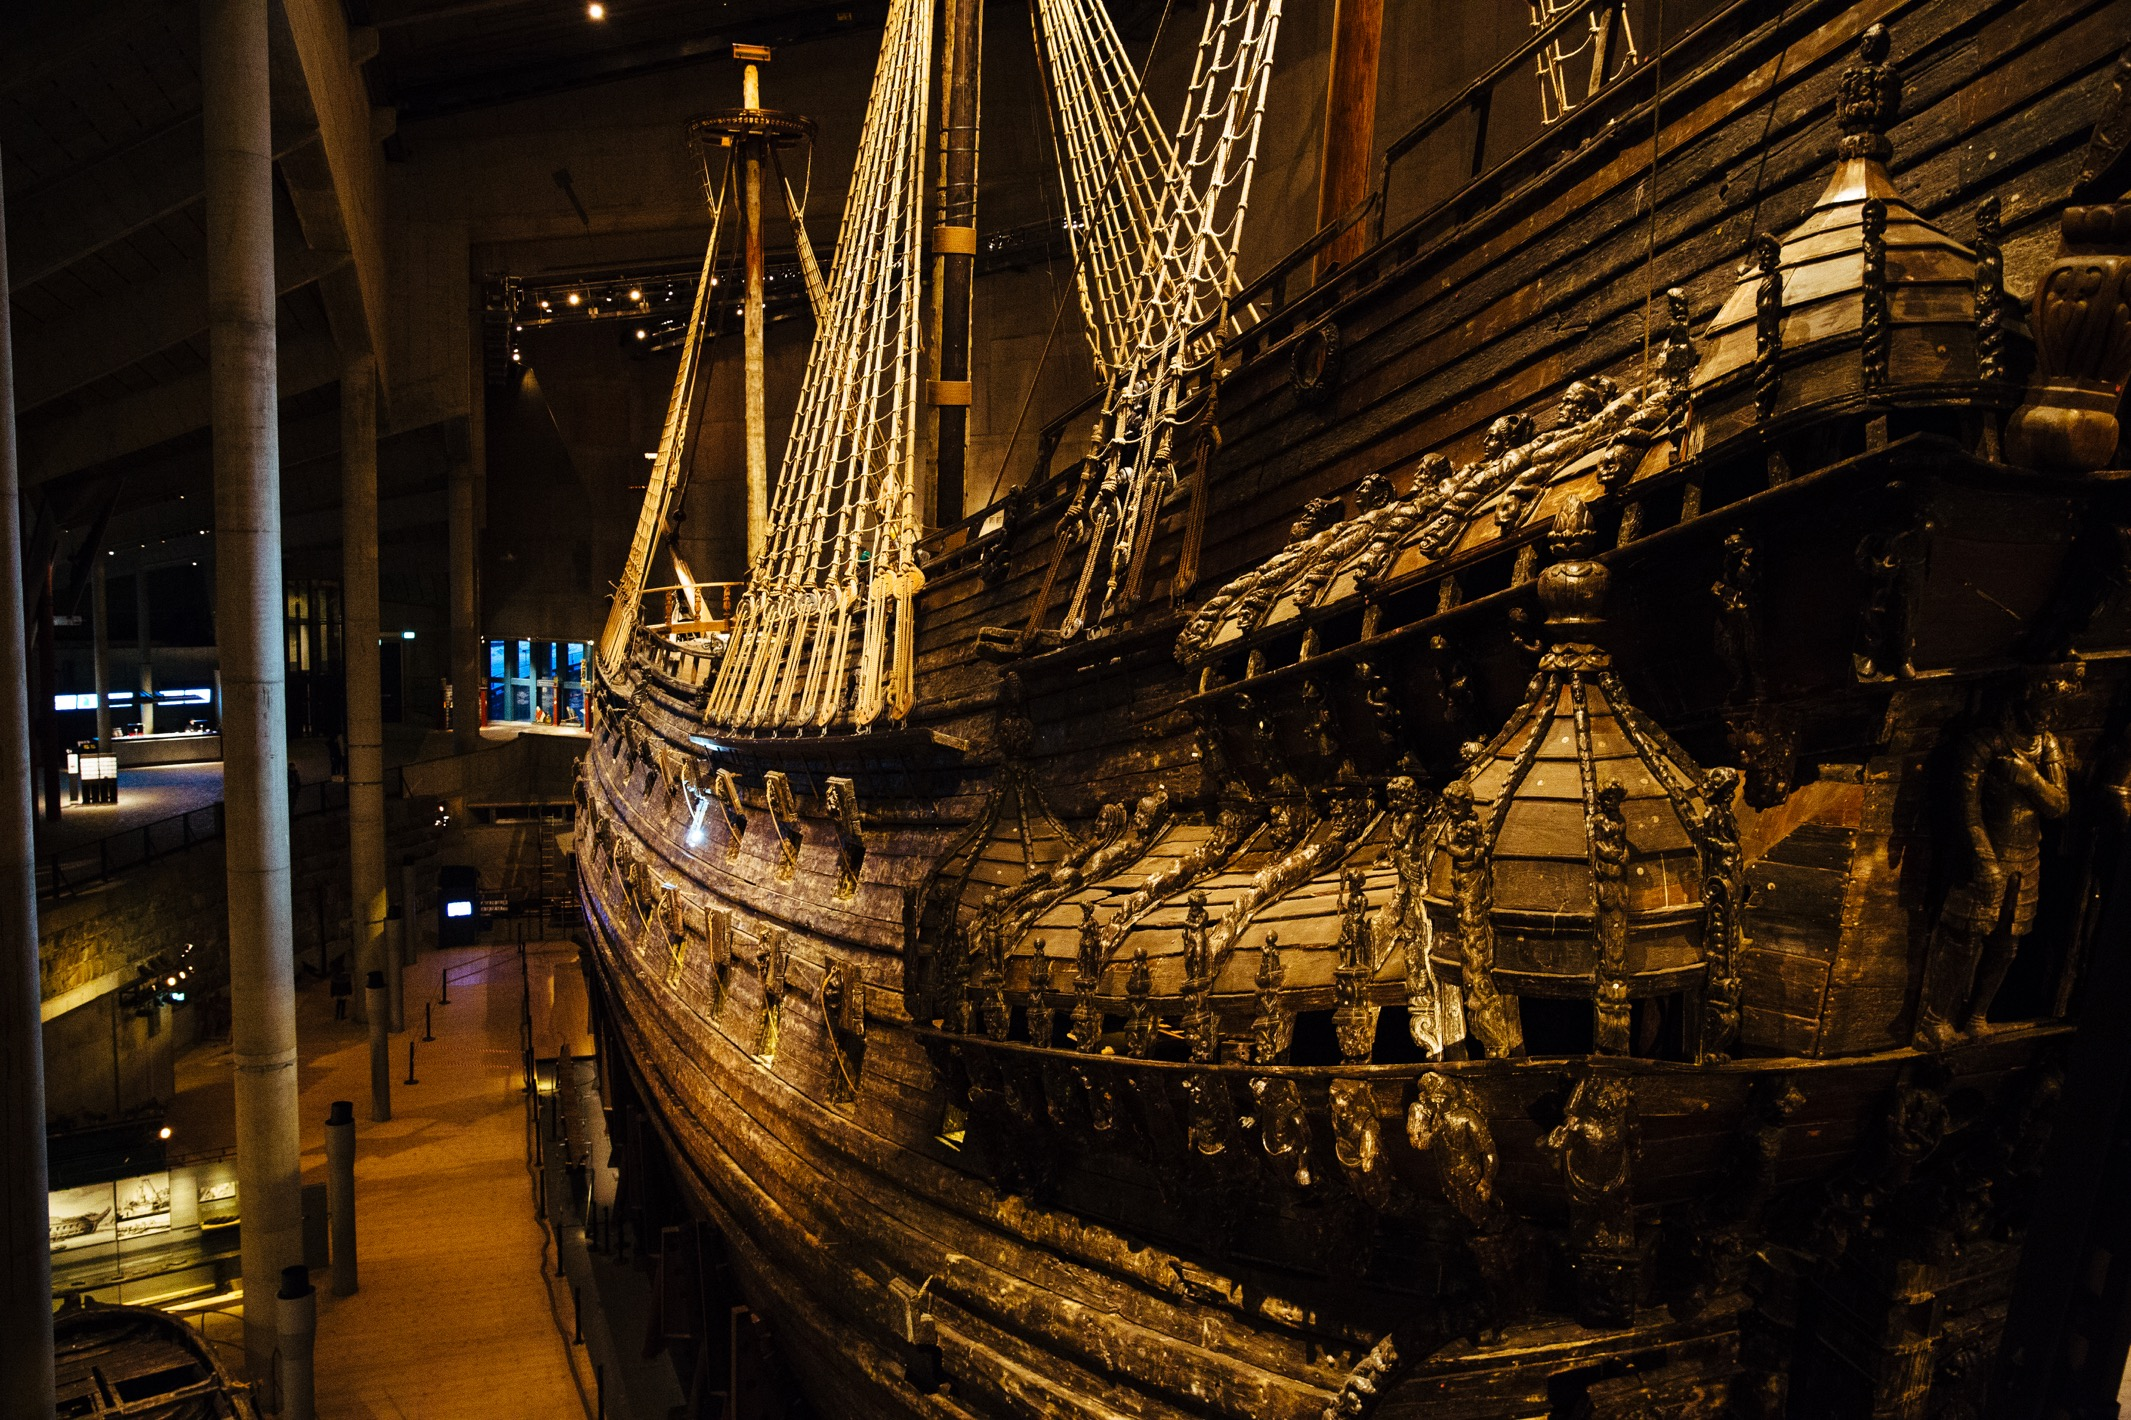 Stockholm: The Vasa, buried beneath the waves.